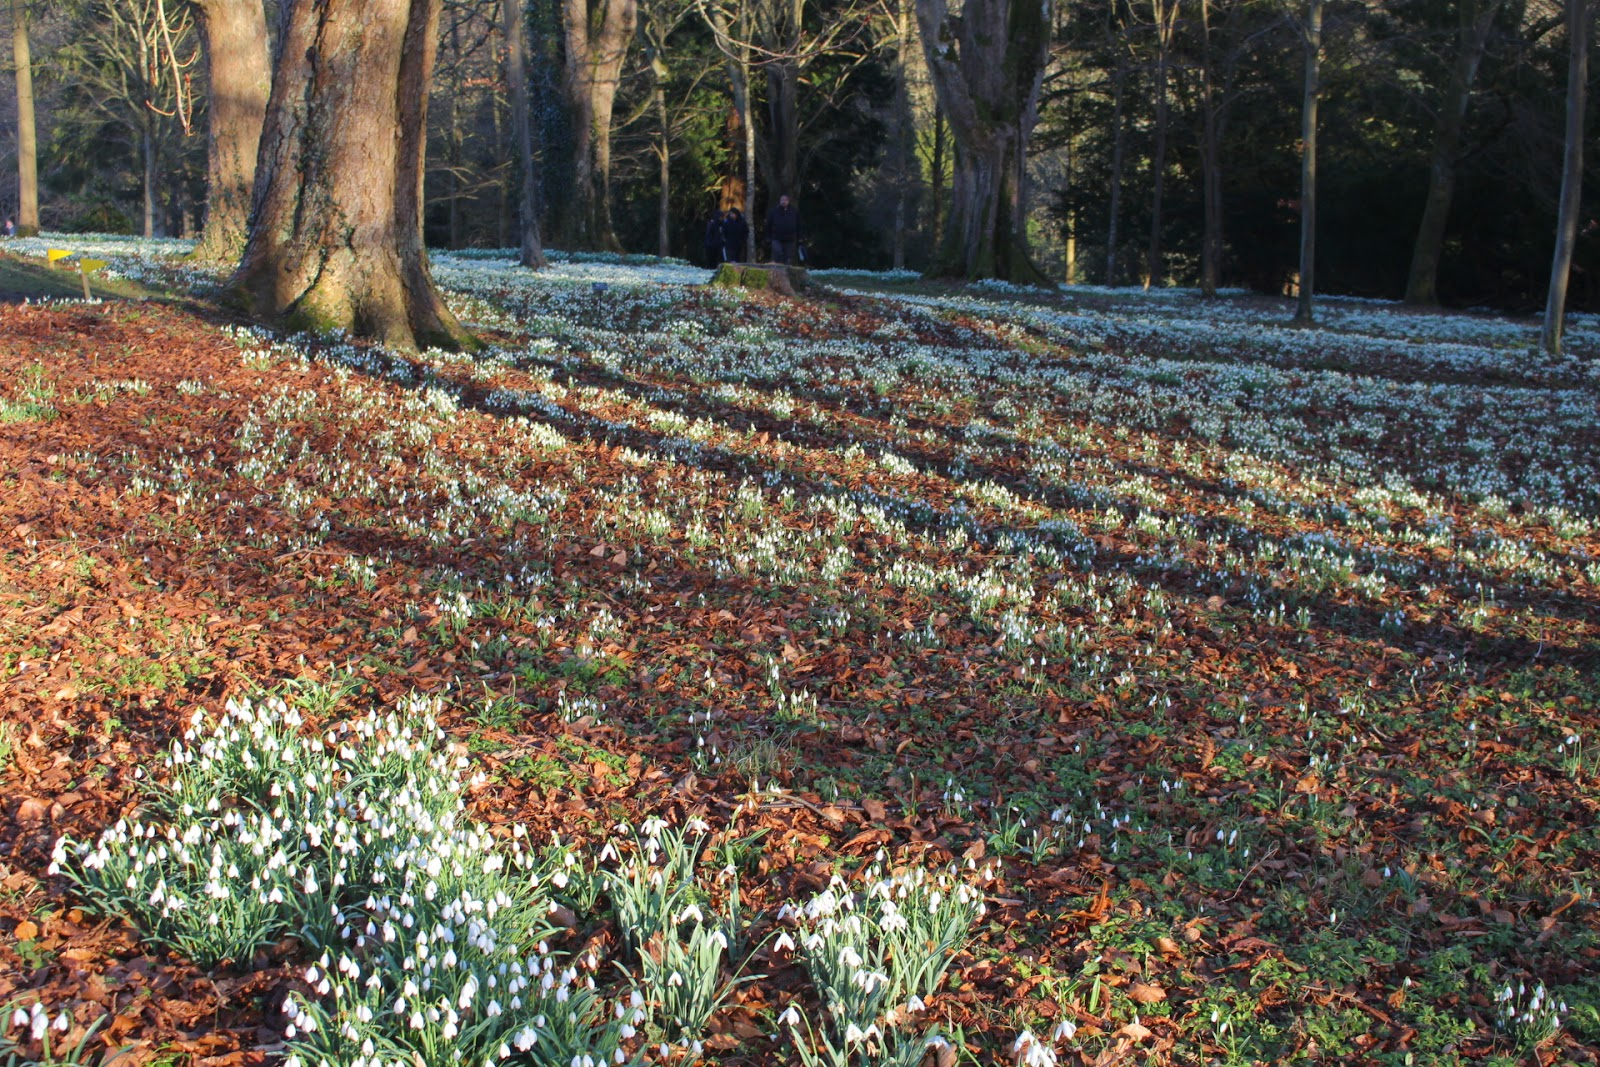 Photo of massed snowdrops at Colesbourne Park, Gloucestershire